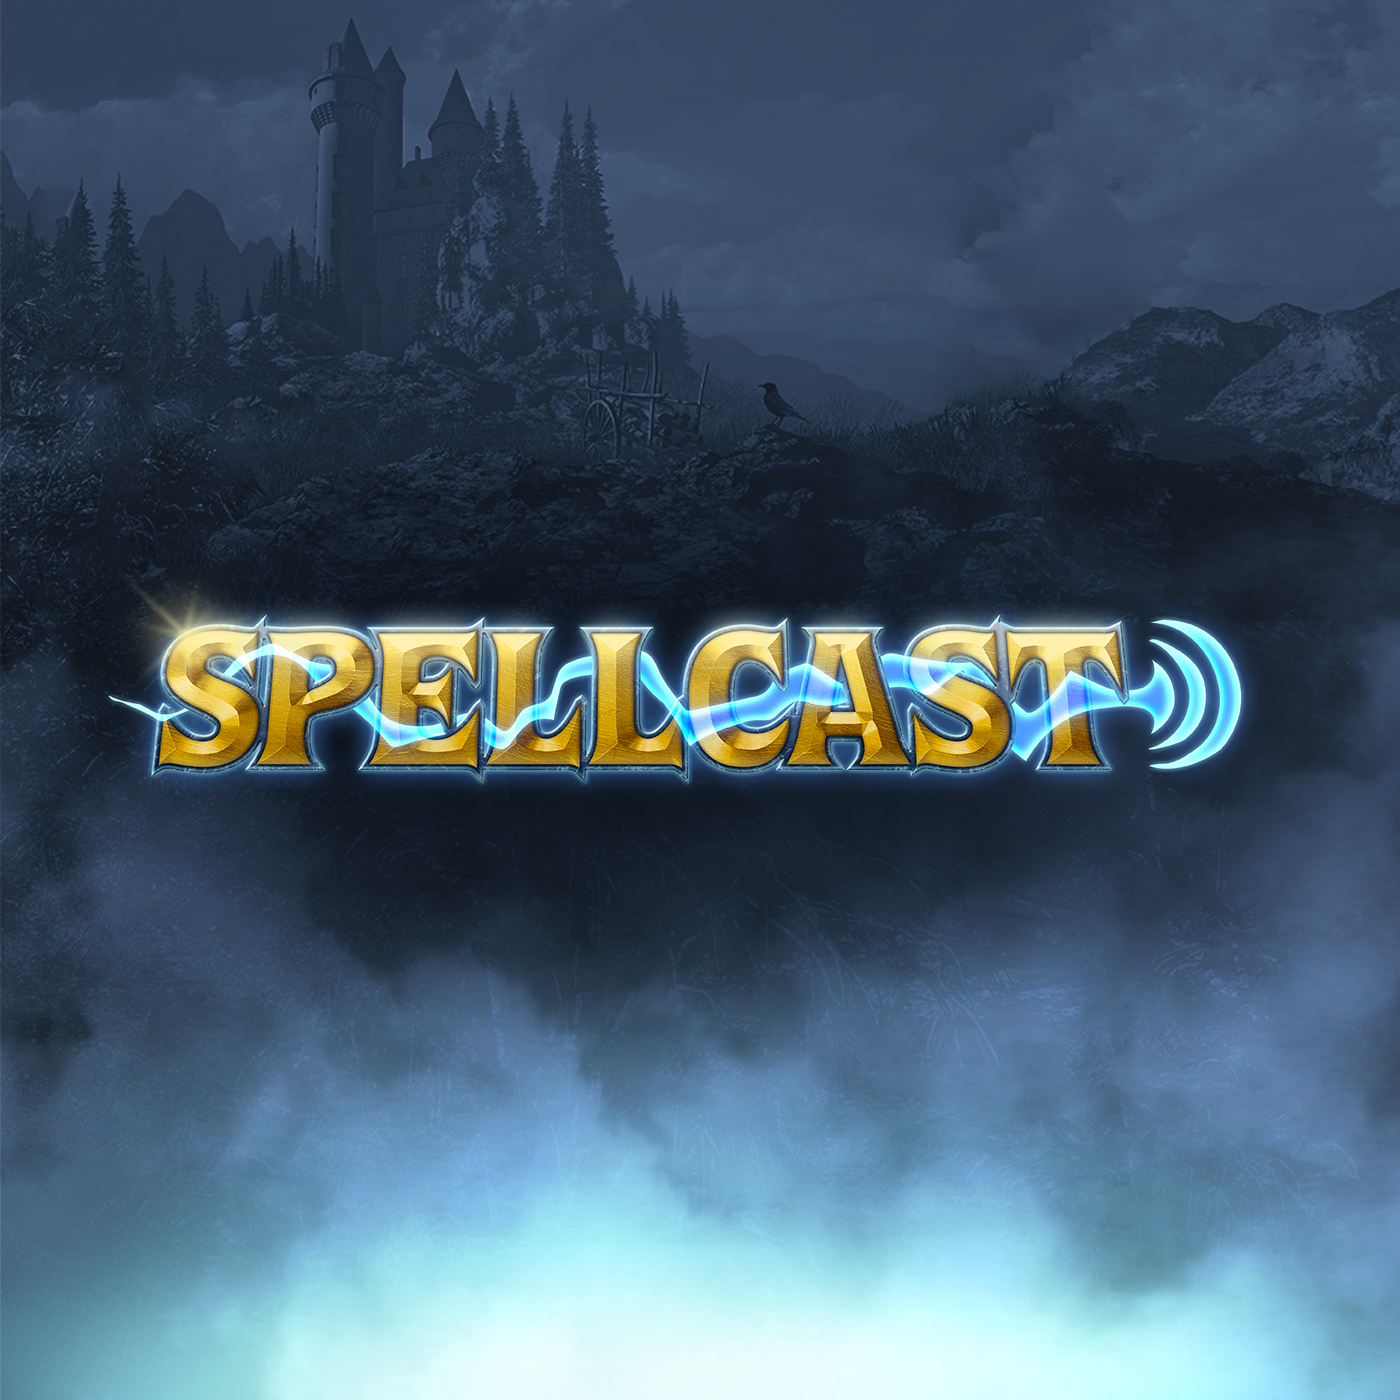 Spellcast Episode 5